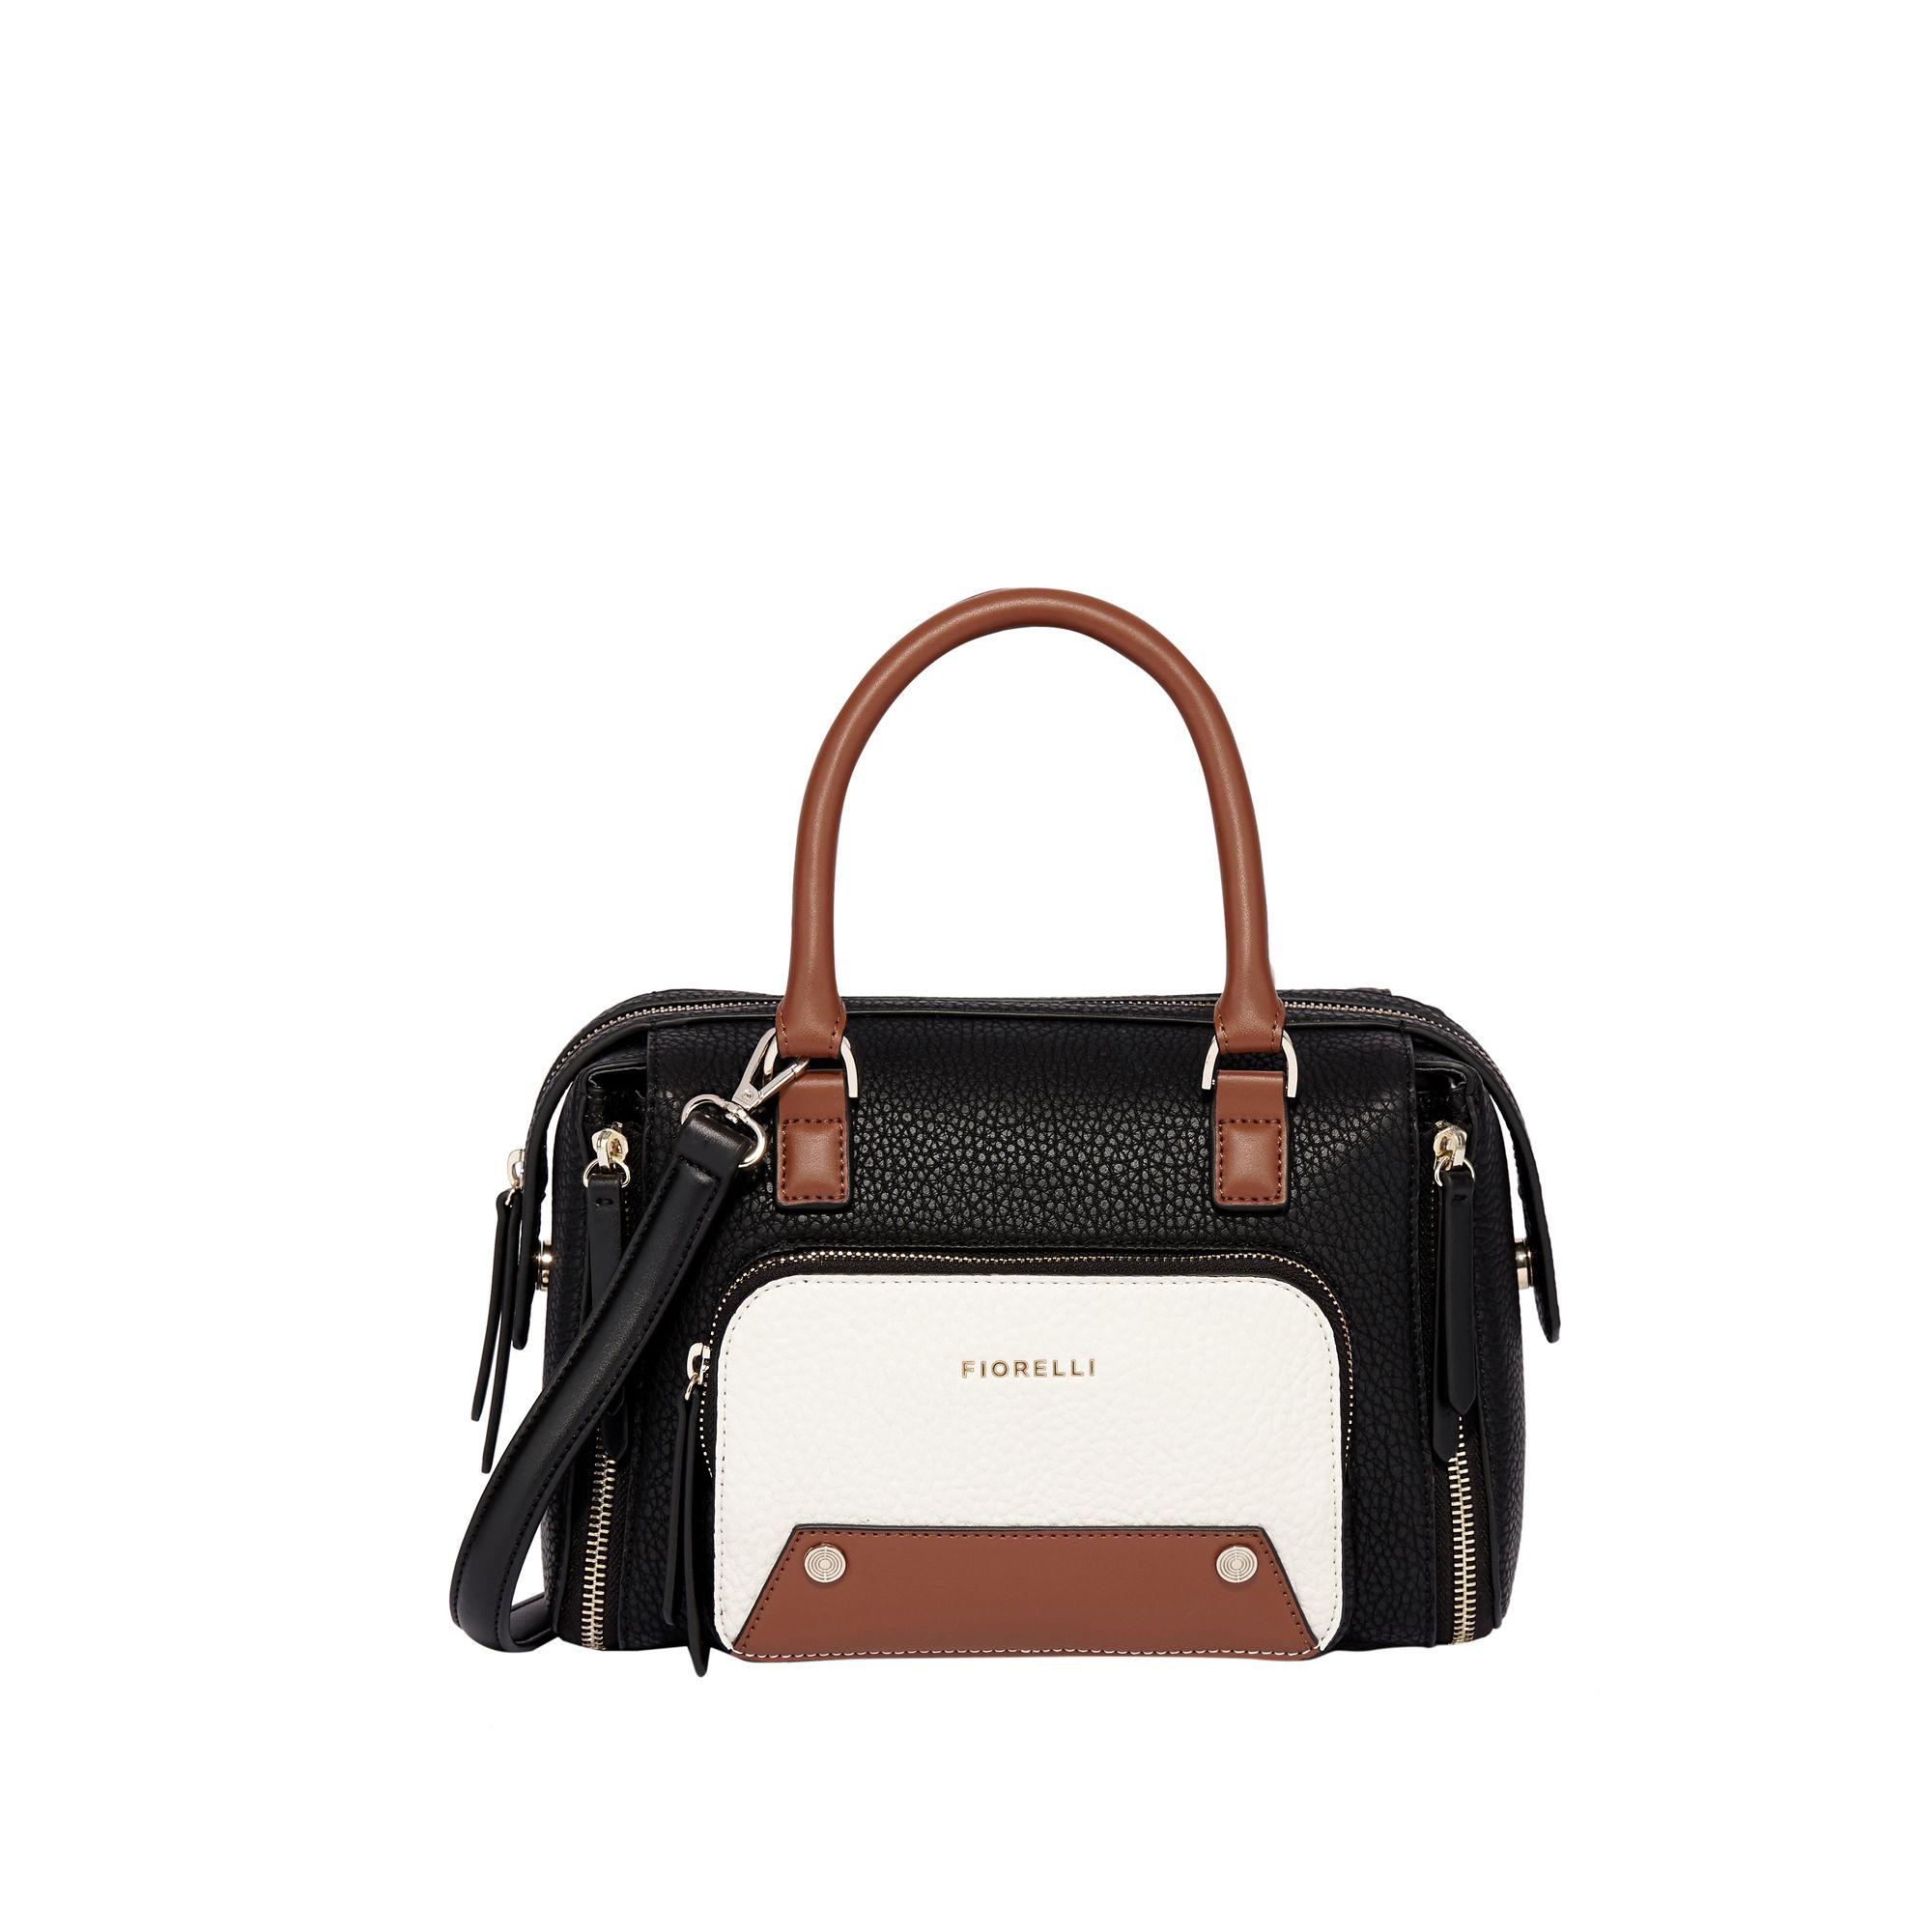 Fiorelli Black  downtown  Mini Bowler Bag in Black - Lyst bb13eb18892e2